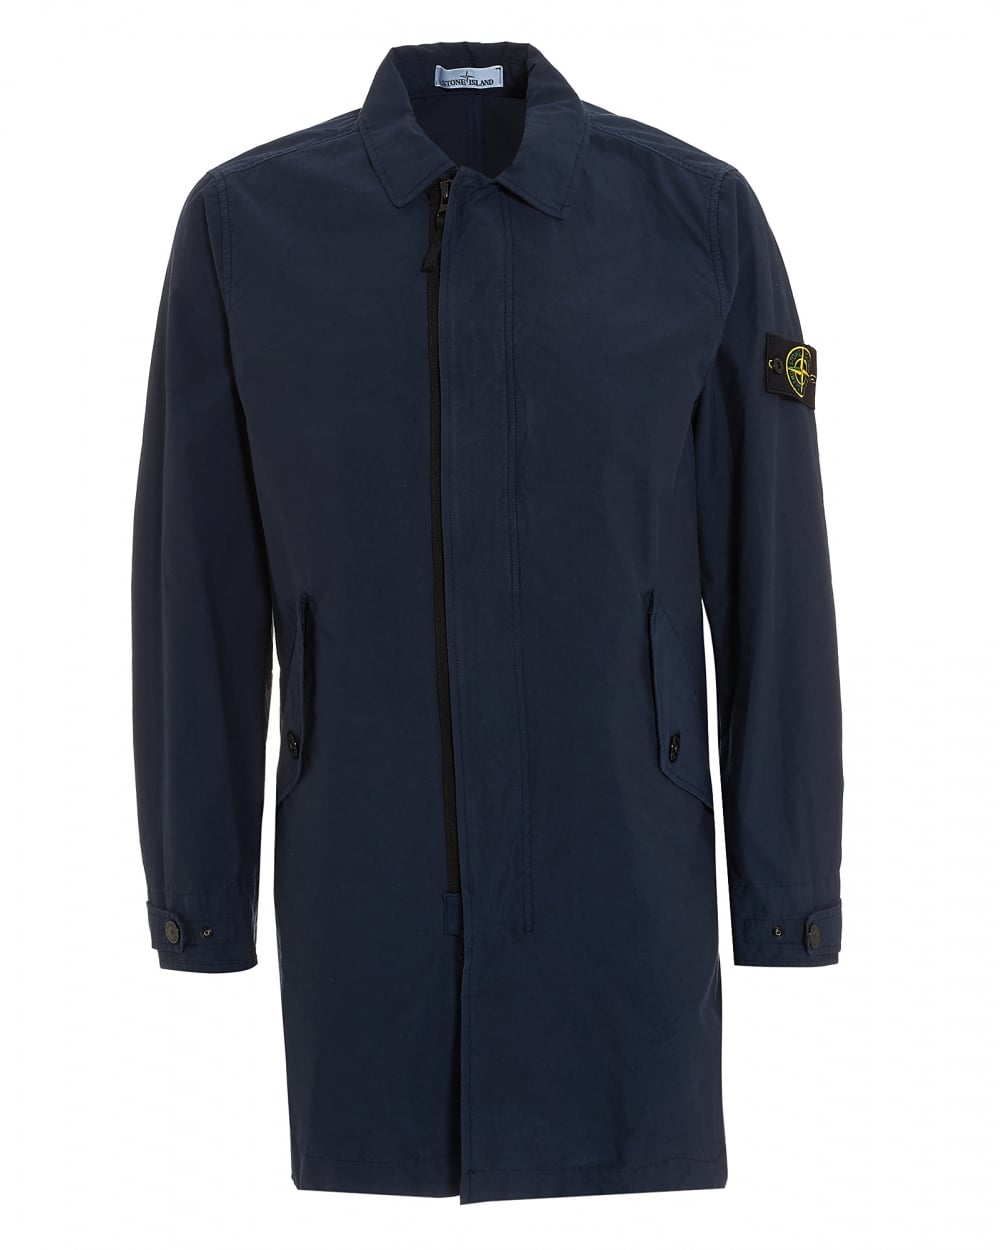 Stone Island Coat Size Fit